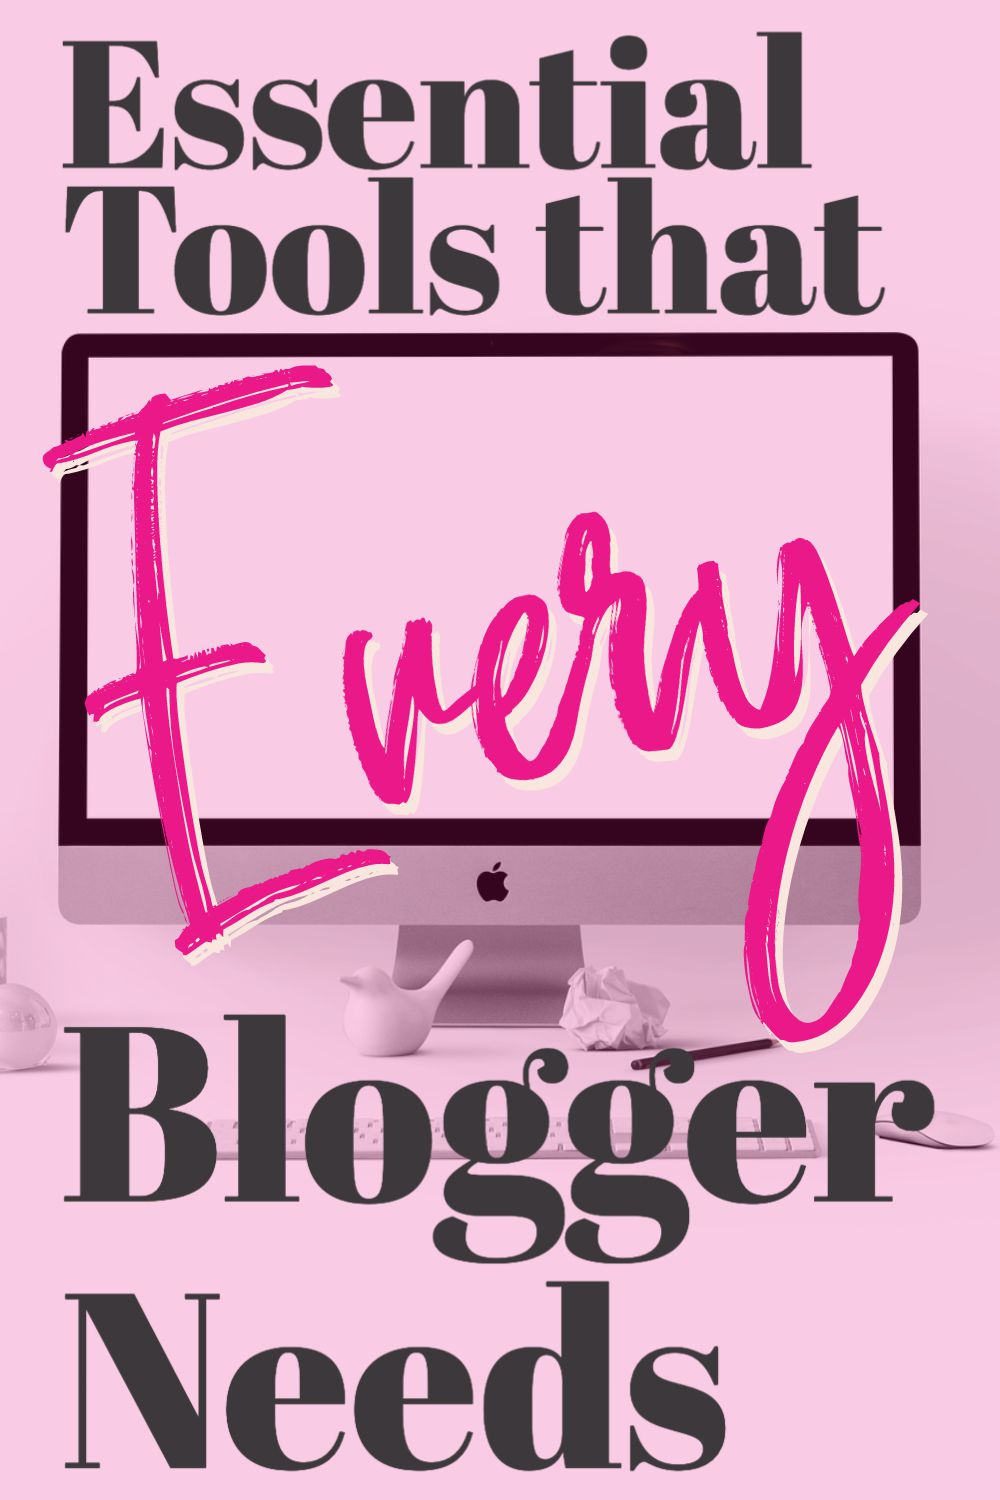 Essential Tools that Every Blogger Needs